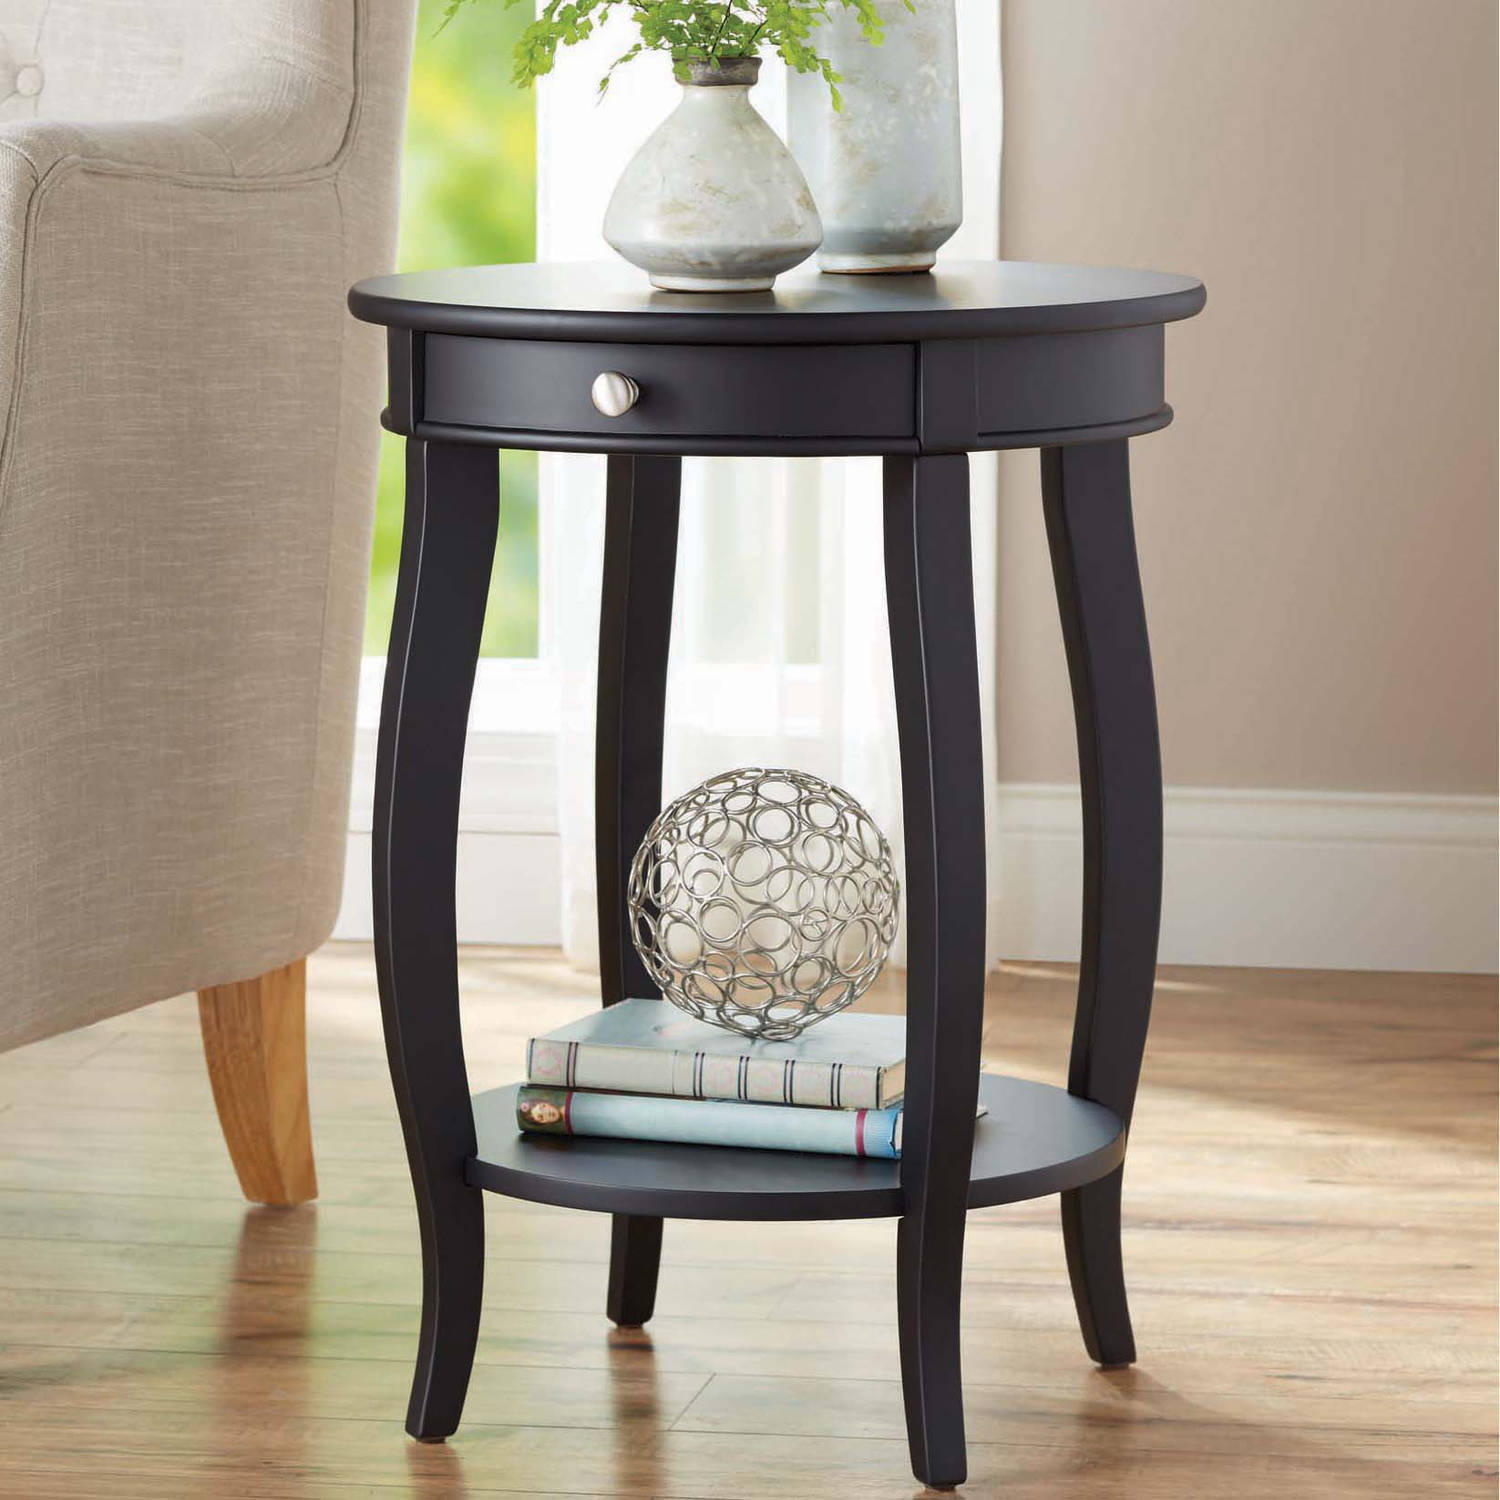 better homes gardens round accent table with drawer multiple wood colors small chairside cherry bedroom furniture timmy night black glass patio square target ballard outdoor